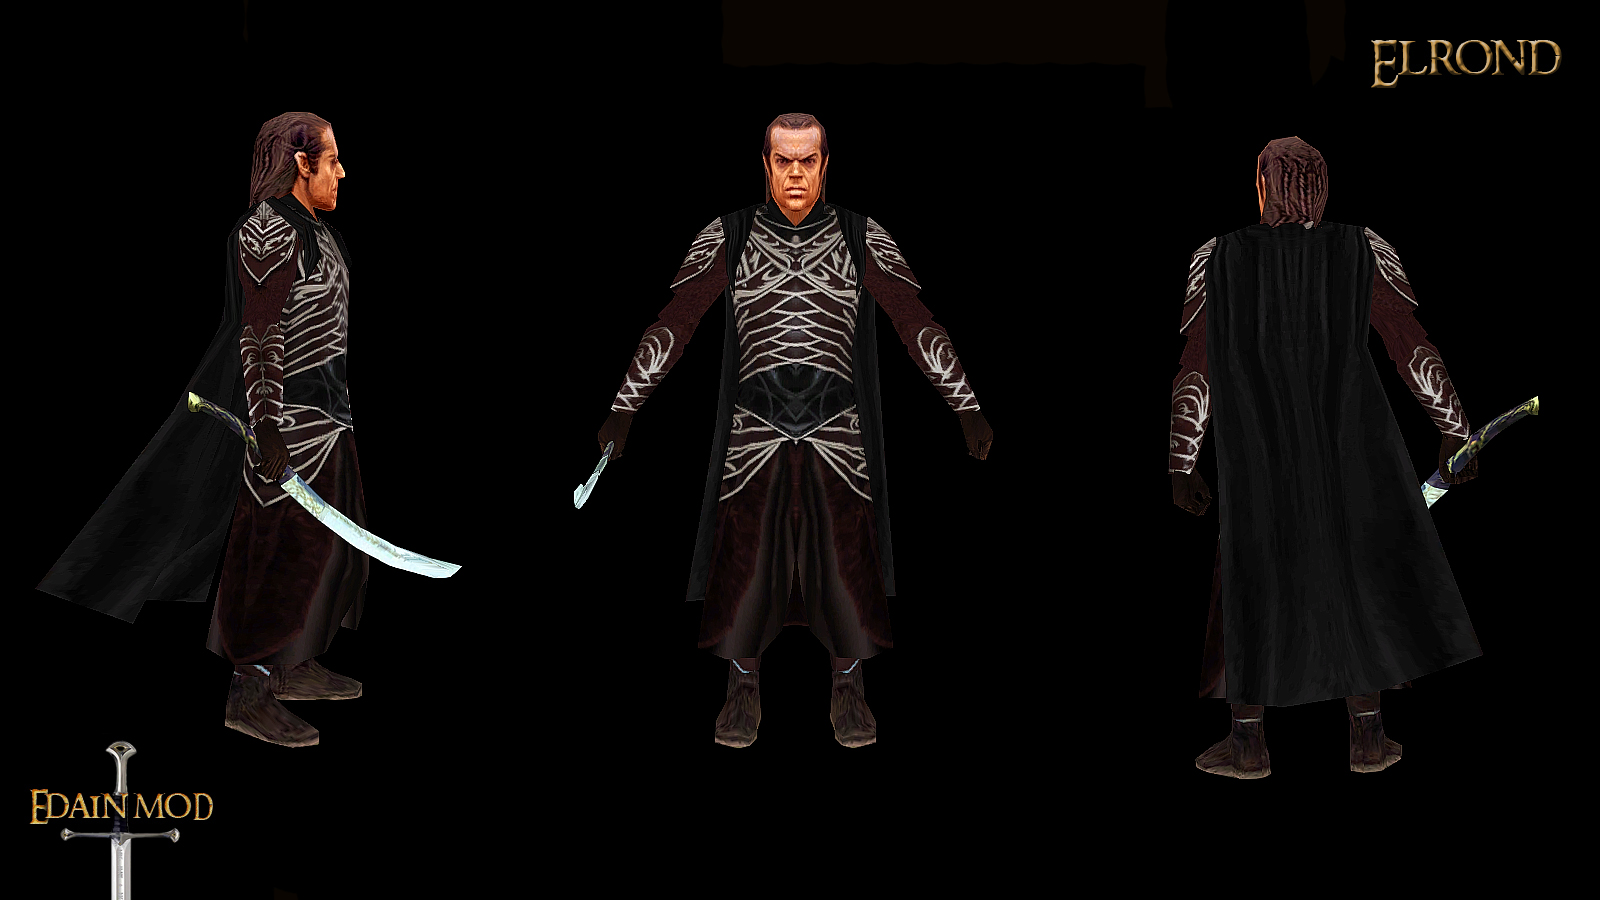 Elrond image   Edain Mod for Battle for Middle earth II Rise of 1600x900